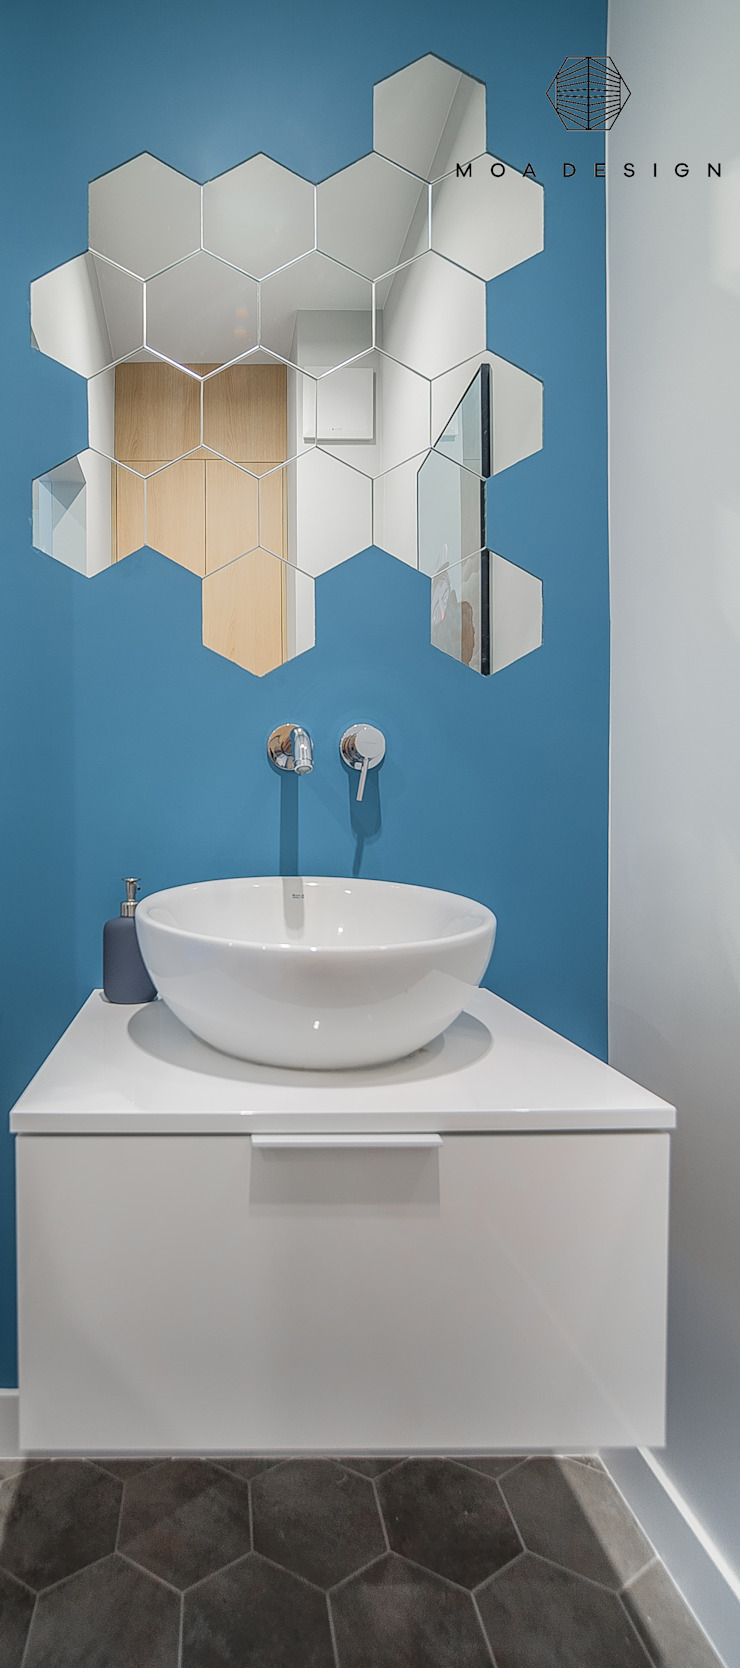 MOA design Scandinavian style bathroom Turquoise